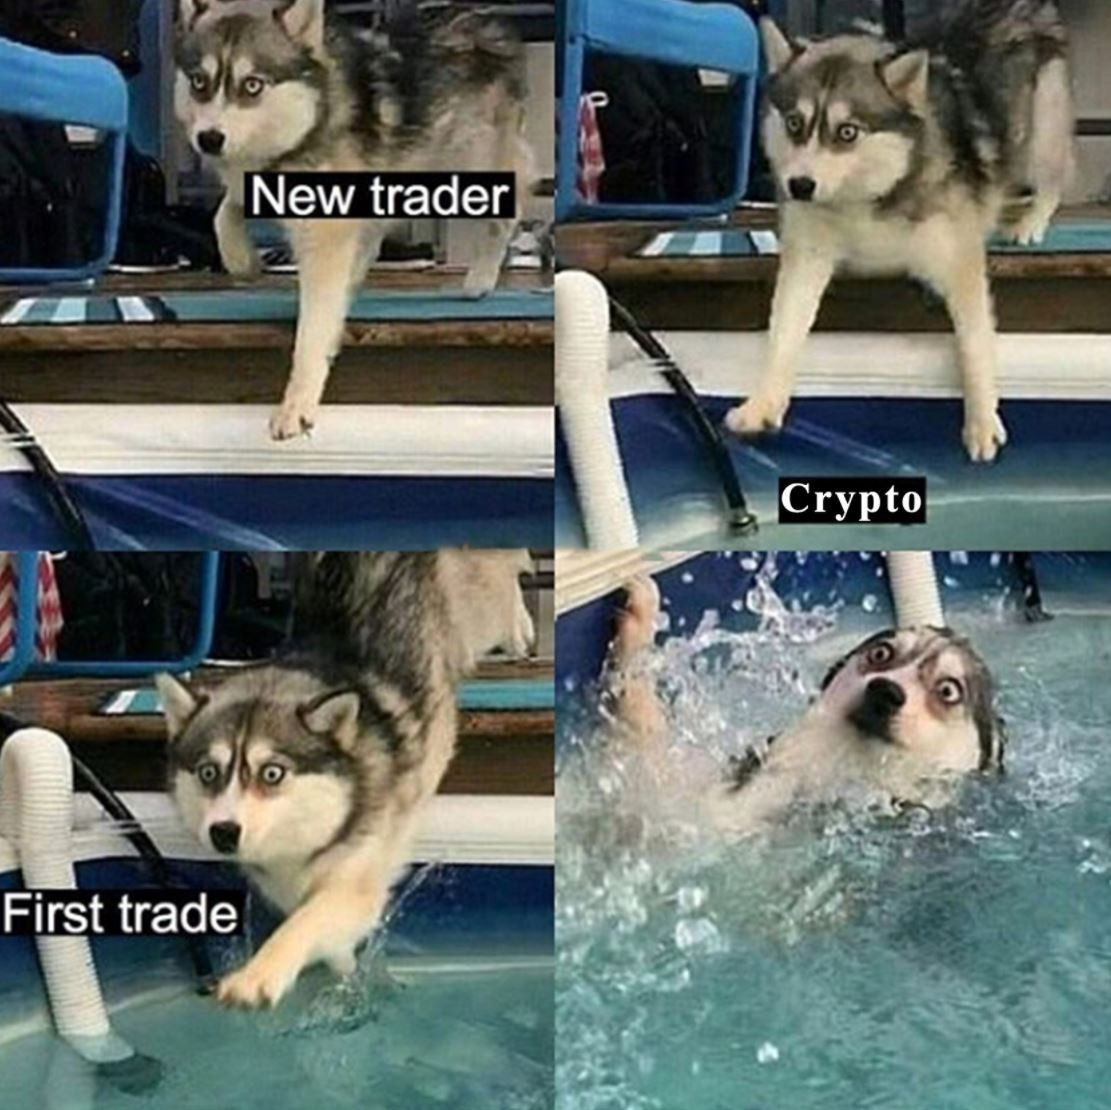 Learning how to swim in the crypto pool